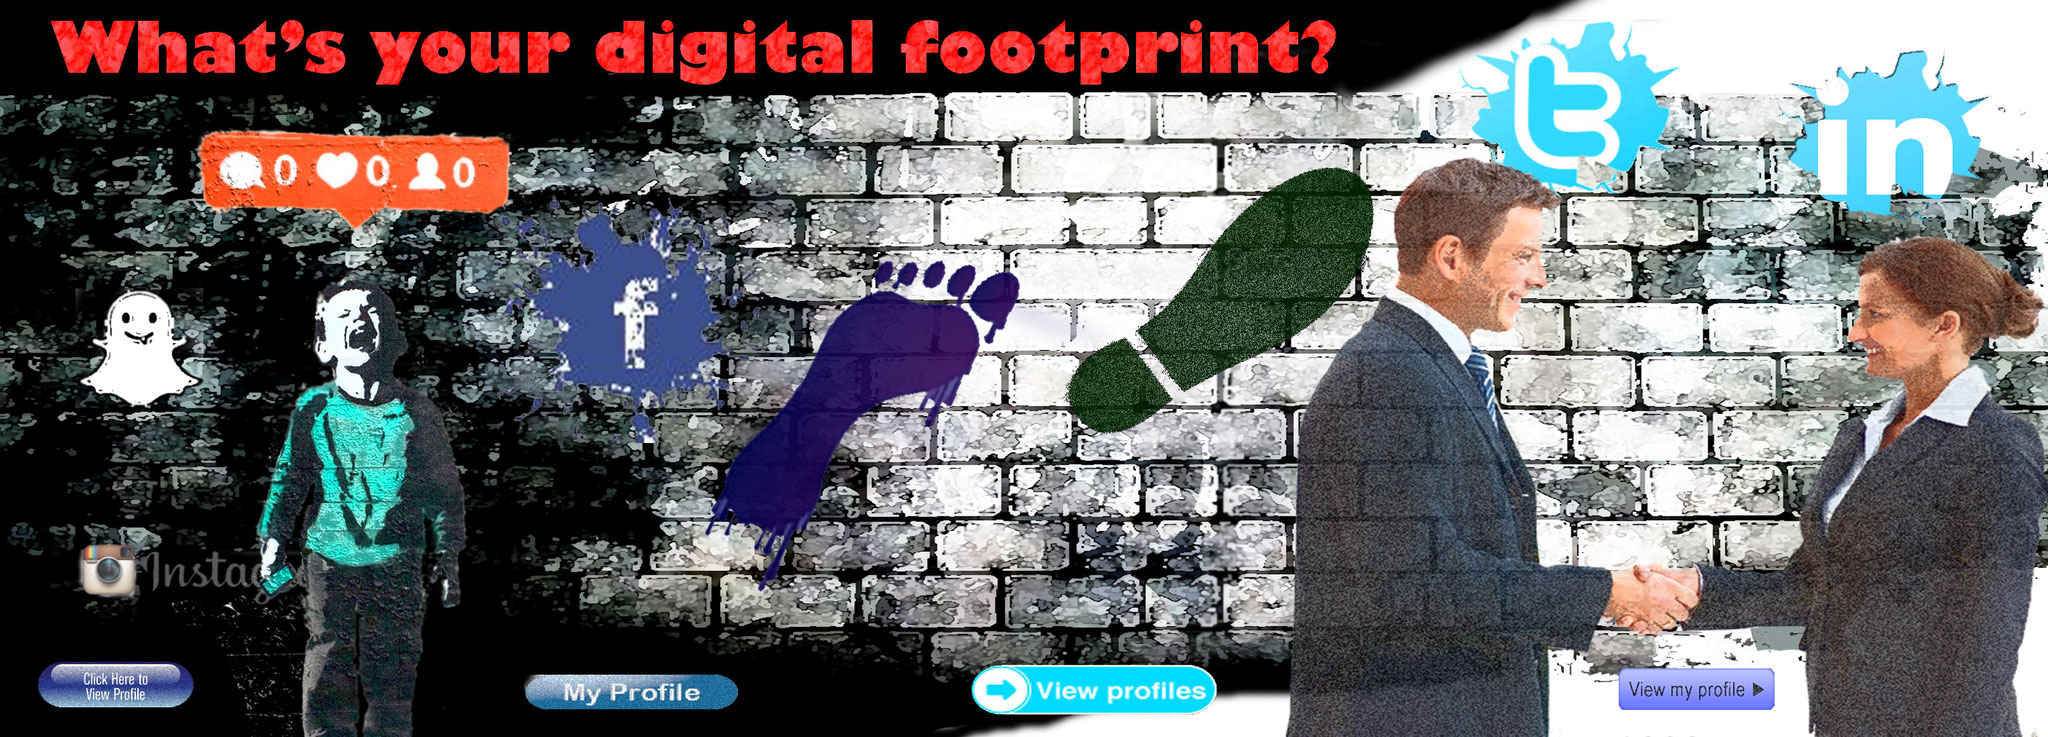 Sheffield University Digital Footprint web banner